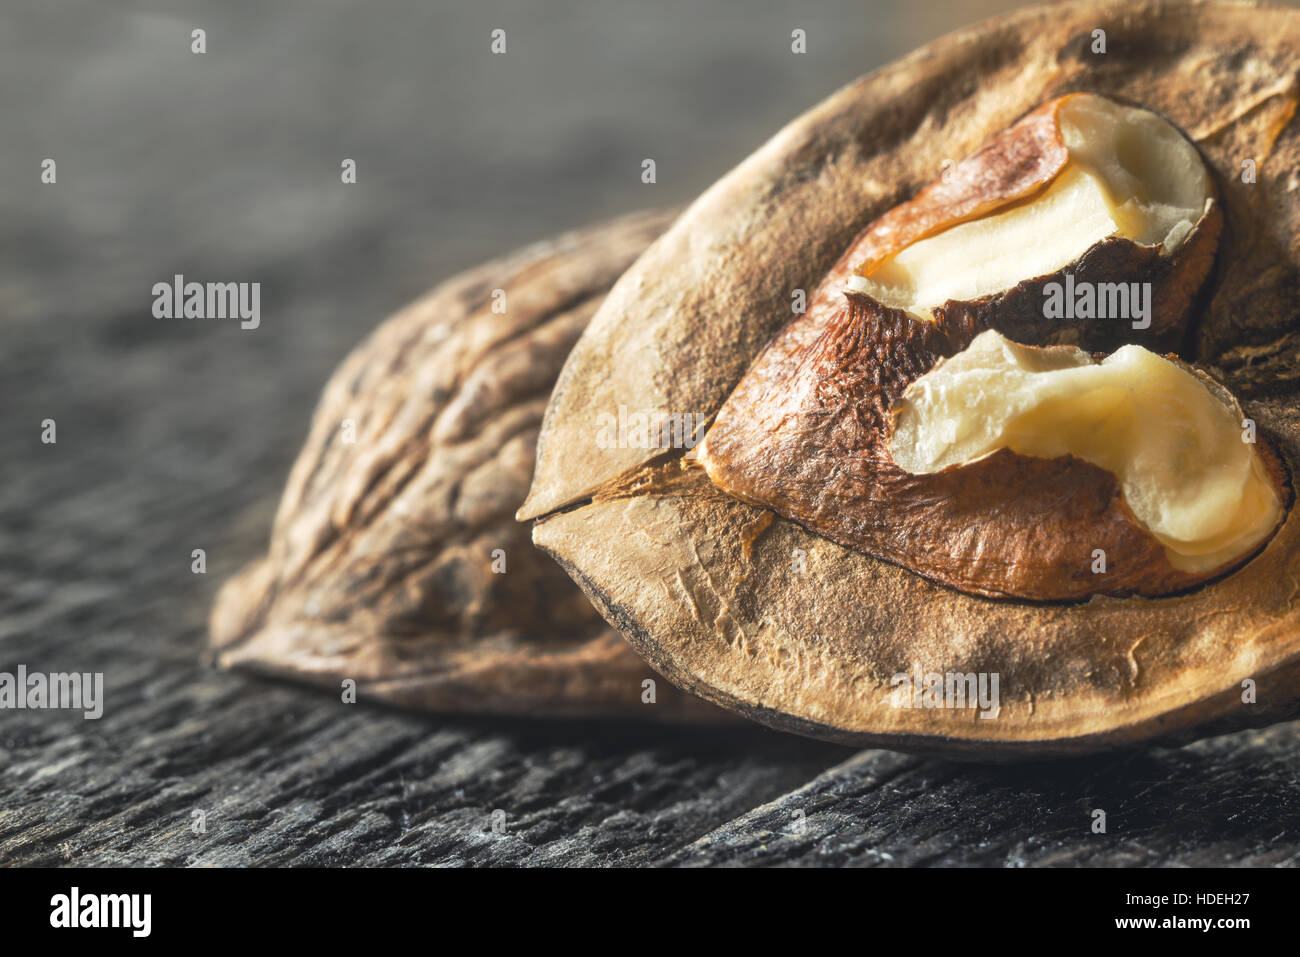 Walnut on the wooden table close-up - Stock Image